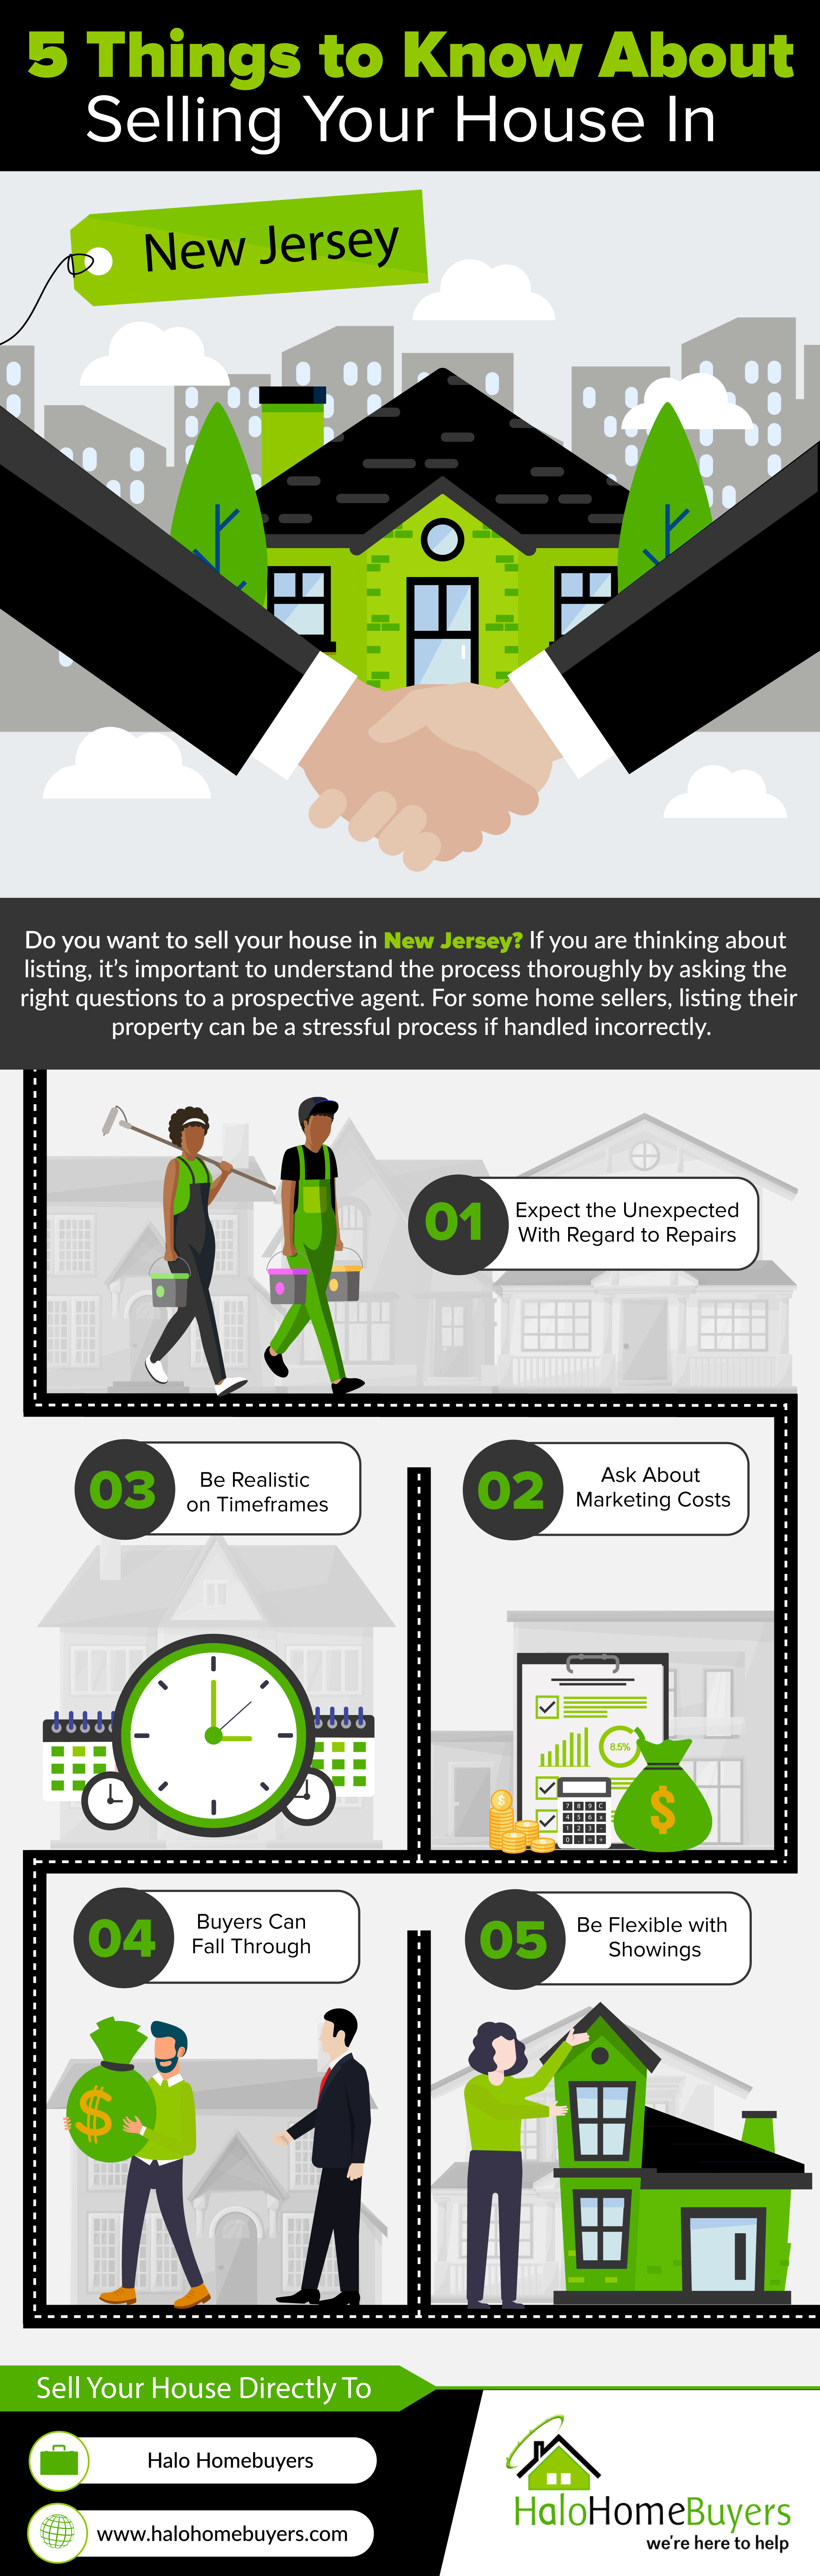 5 Things To Know About Selling Your House in New Jersey